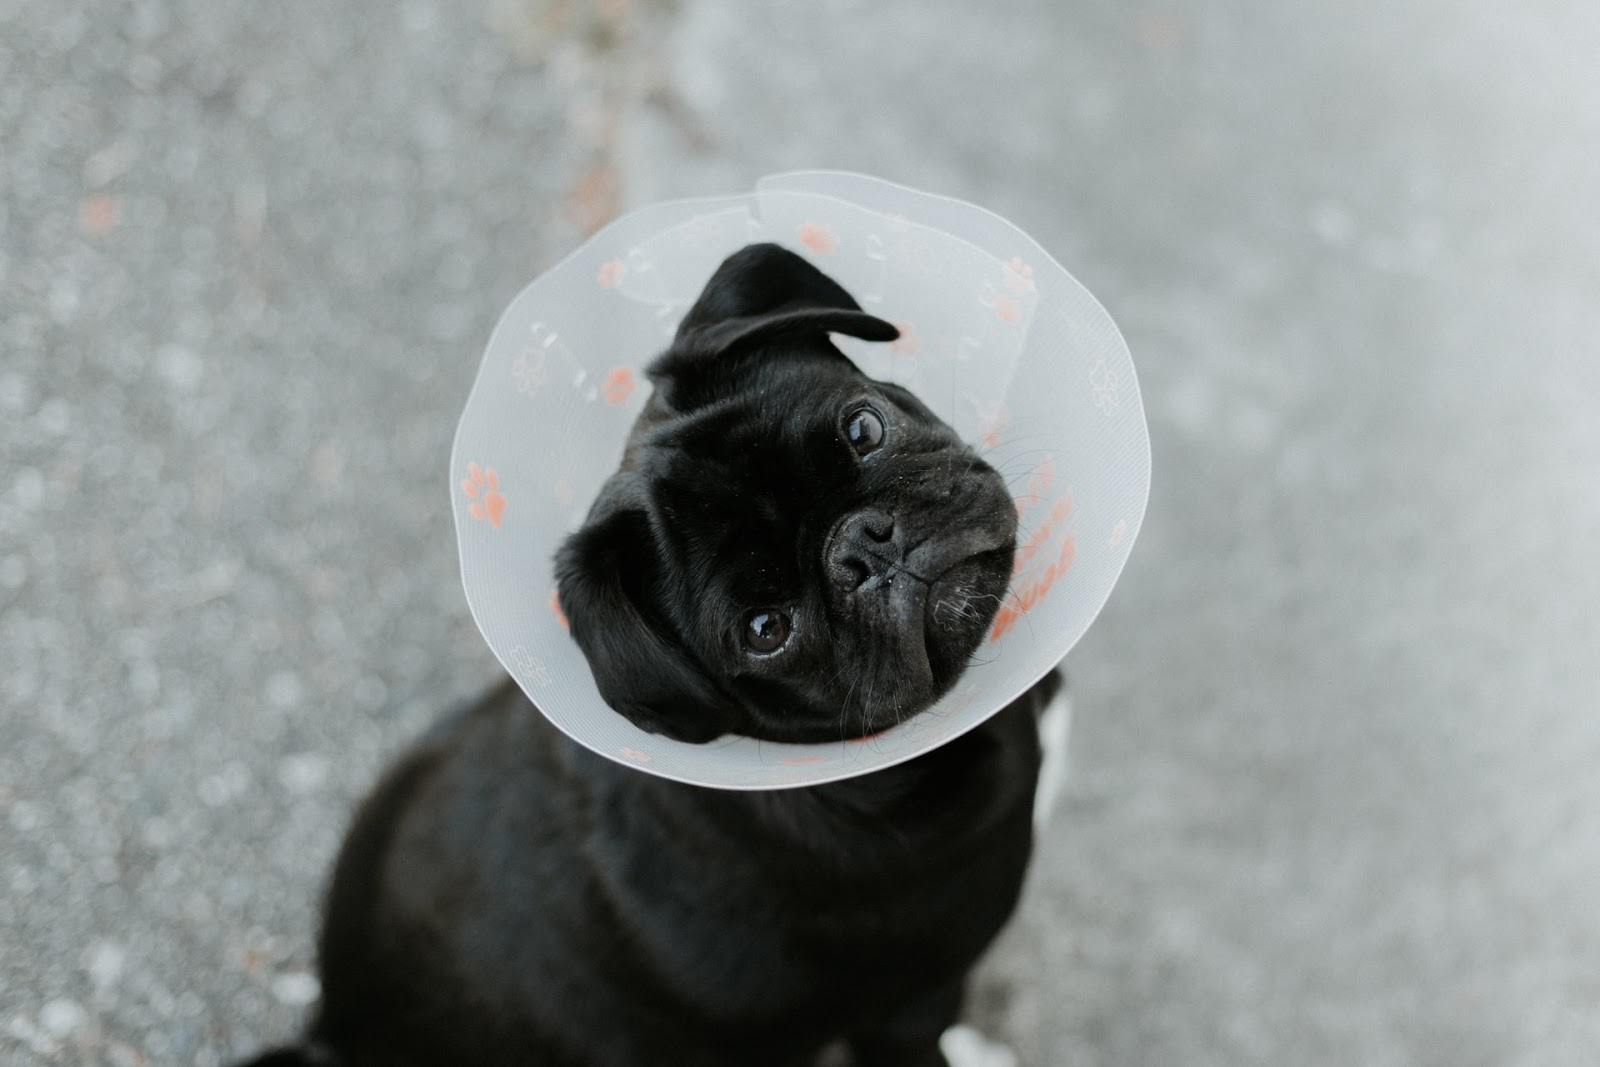 A small black dog staring up with a cone on its head